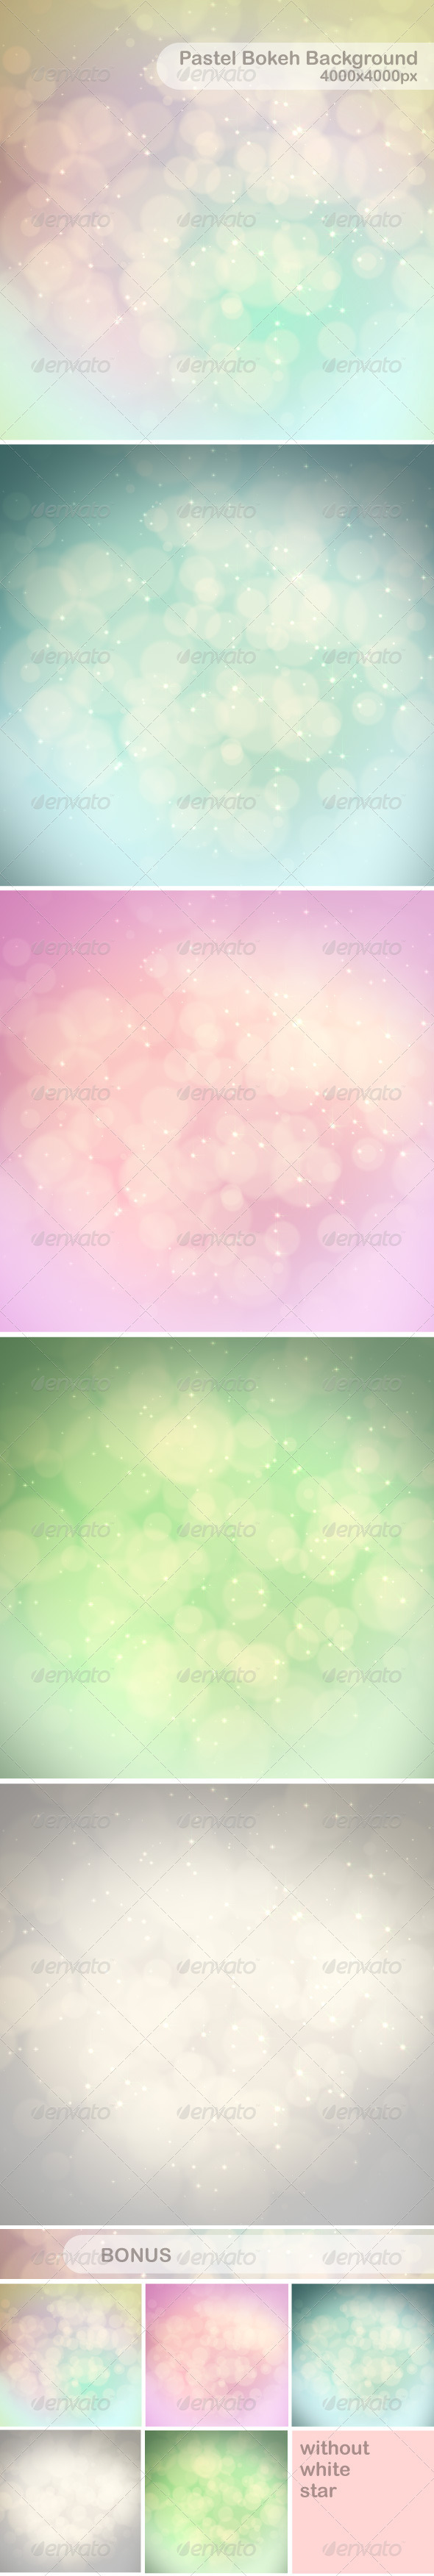 Pastel Bokeh Background - Abstract Backgrounds